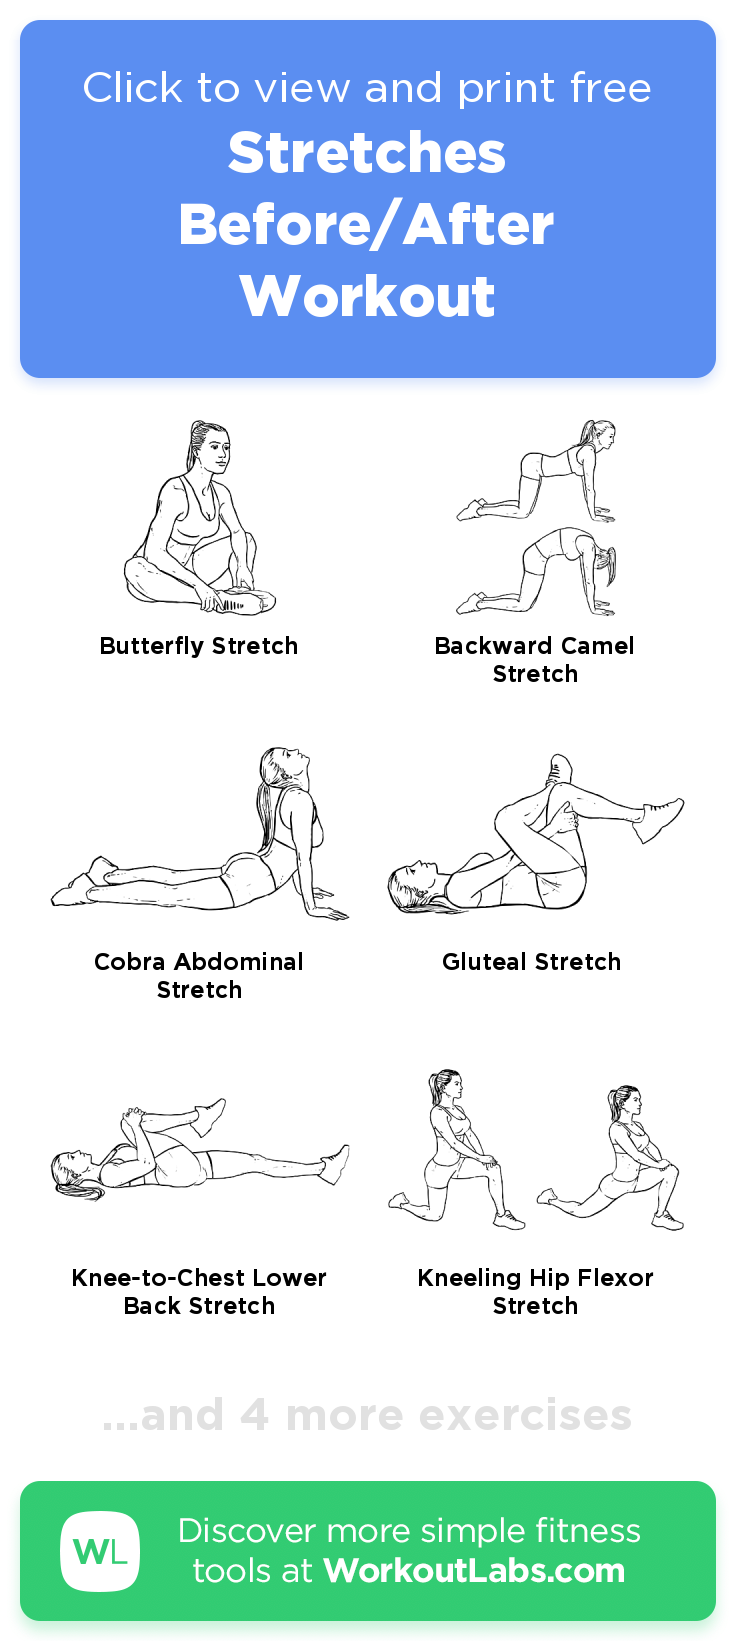 Stretches Before/After Workout · Free workout by WorkoutLabs Fit